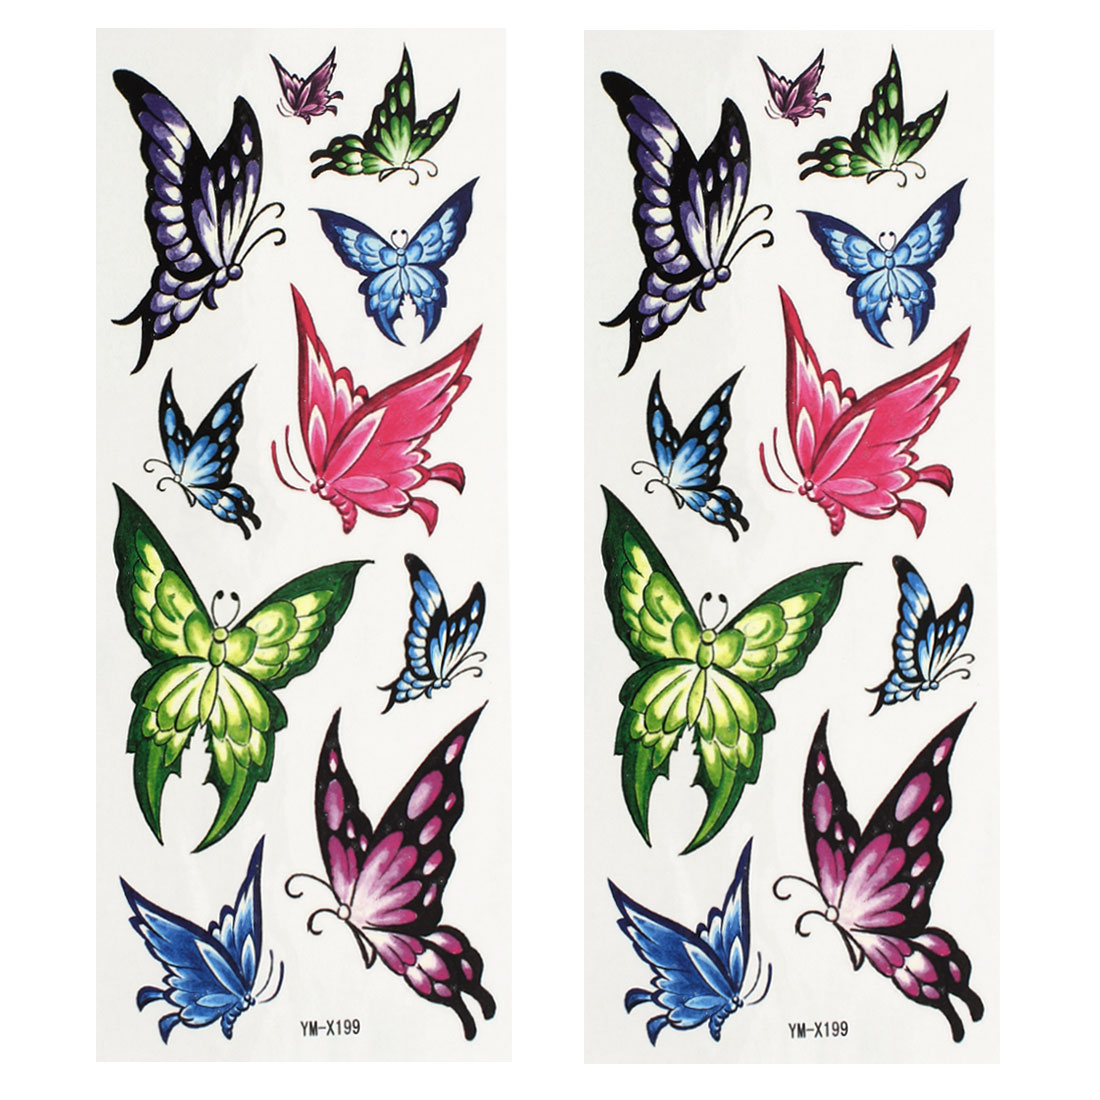 2 Sheets Body Art Removable Fake Butterfly Pattern Sticker Temporary Tattoos Colorful